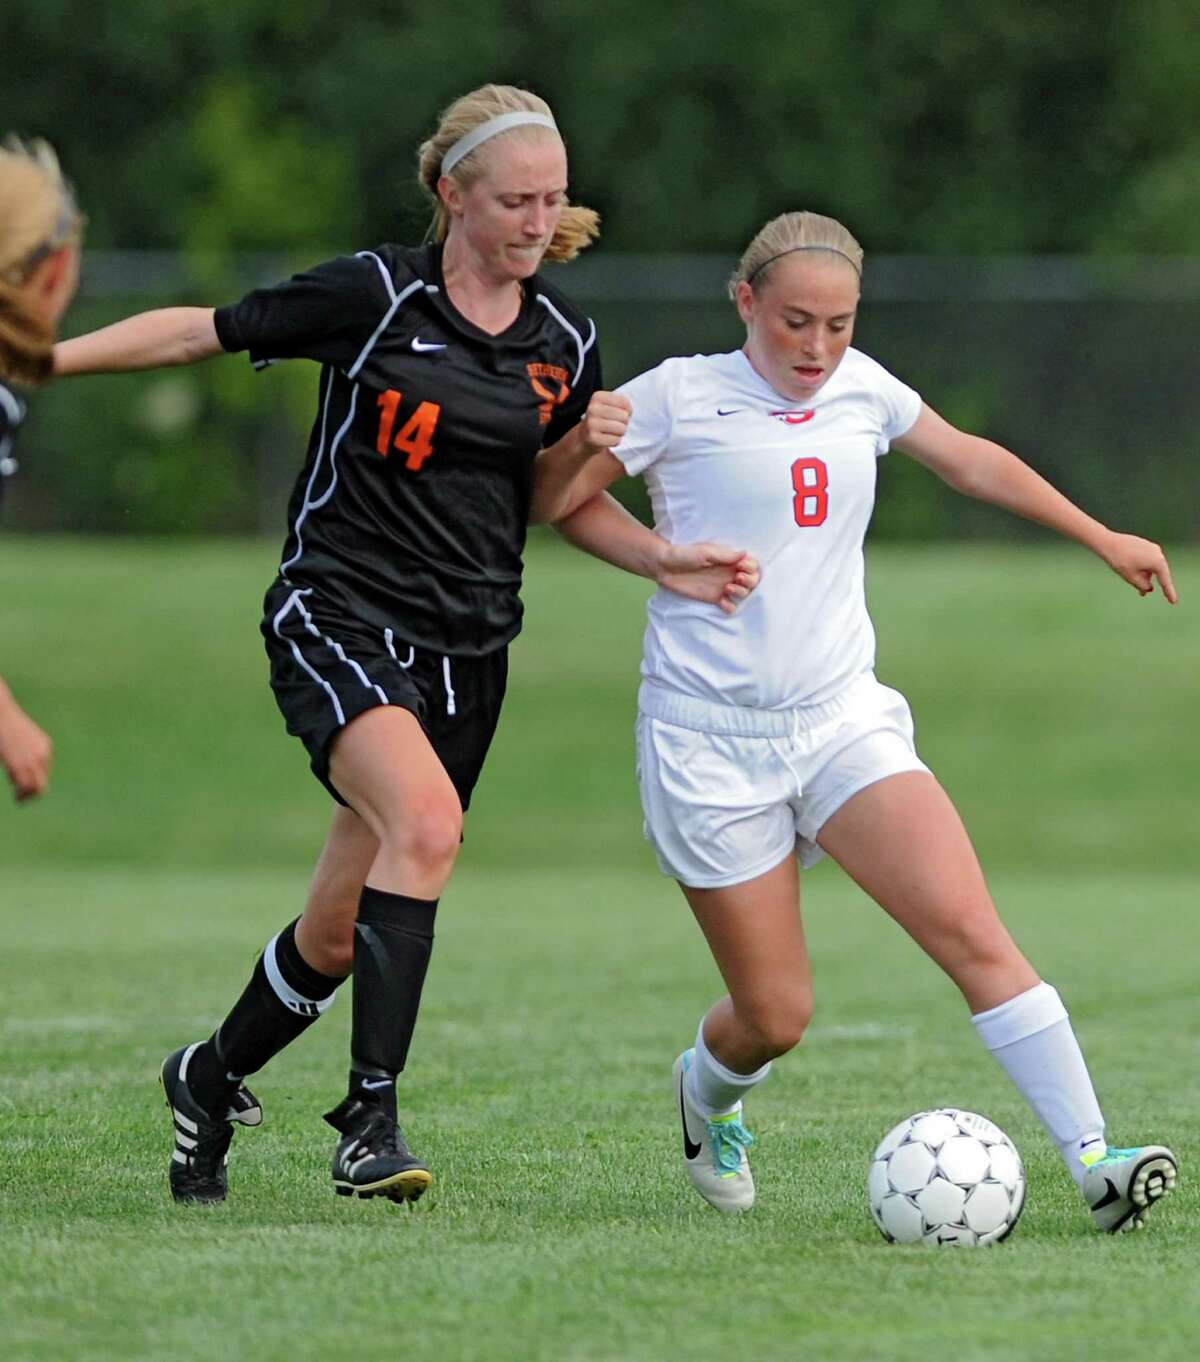 Bethlehem's Samantha Taillon battles for the ball with Guilderland's Breanne Ford during a soccer game on Tuesday, Sept. 3, 2013 in Guilderland, N.Y. (Lori Van Buren / Times Union)